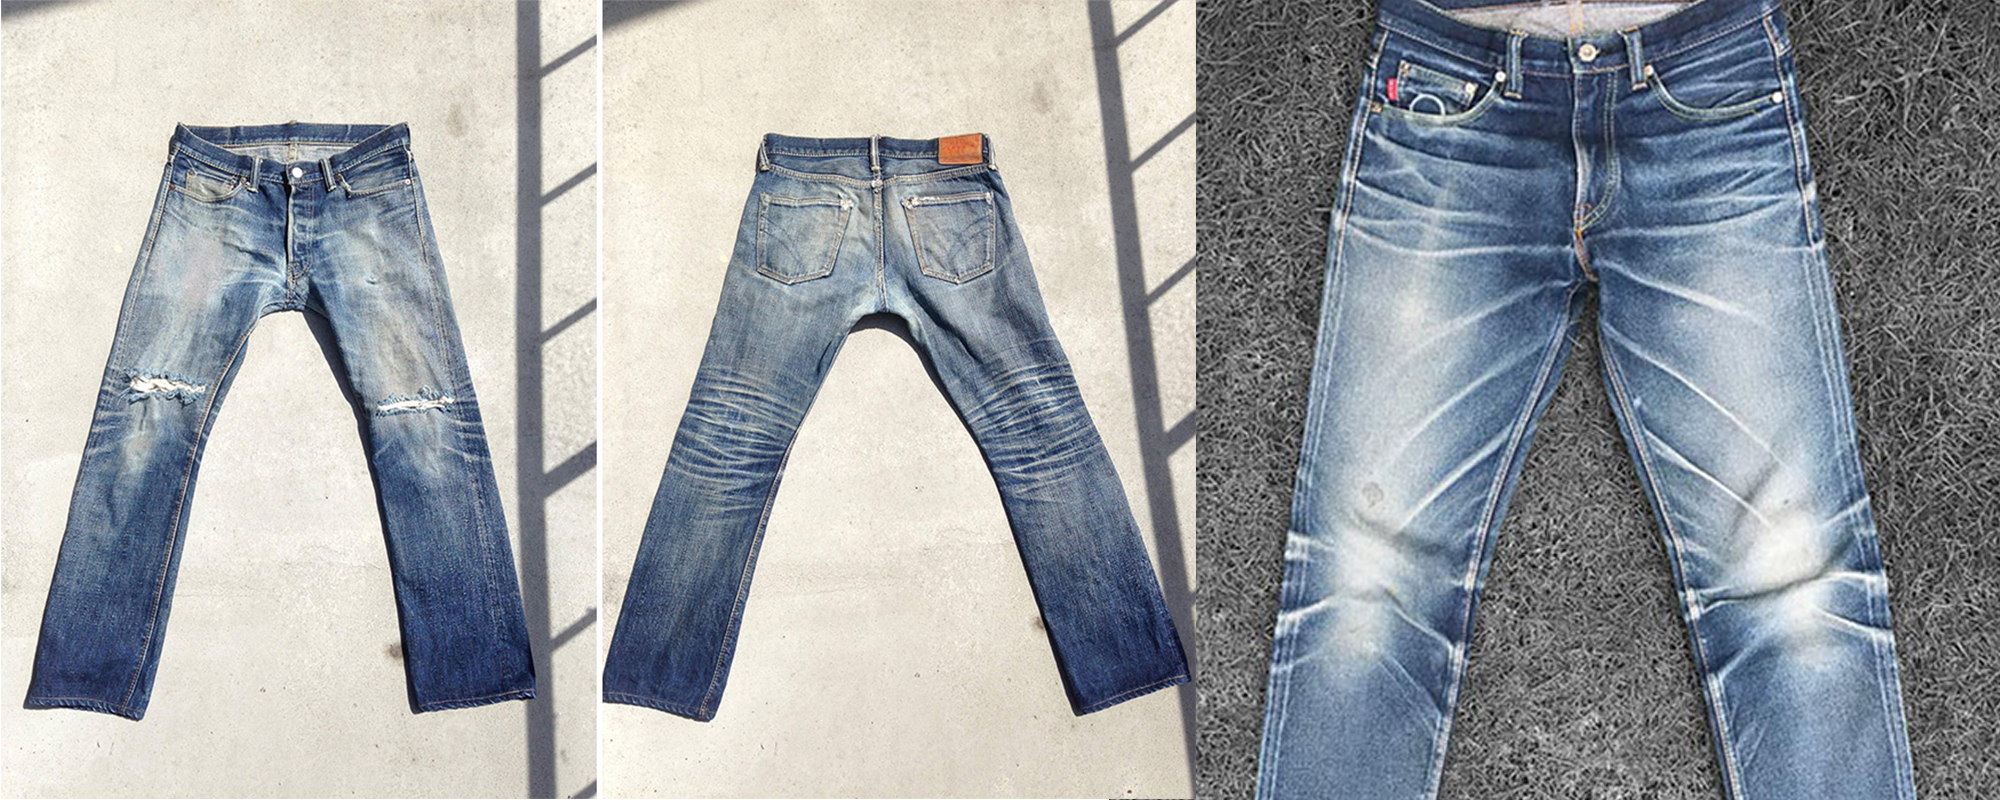 fade_jeans